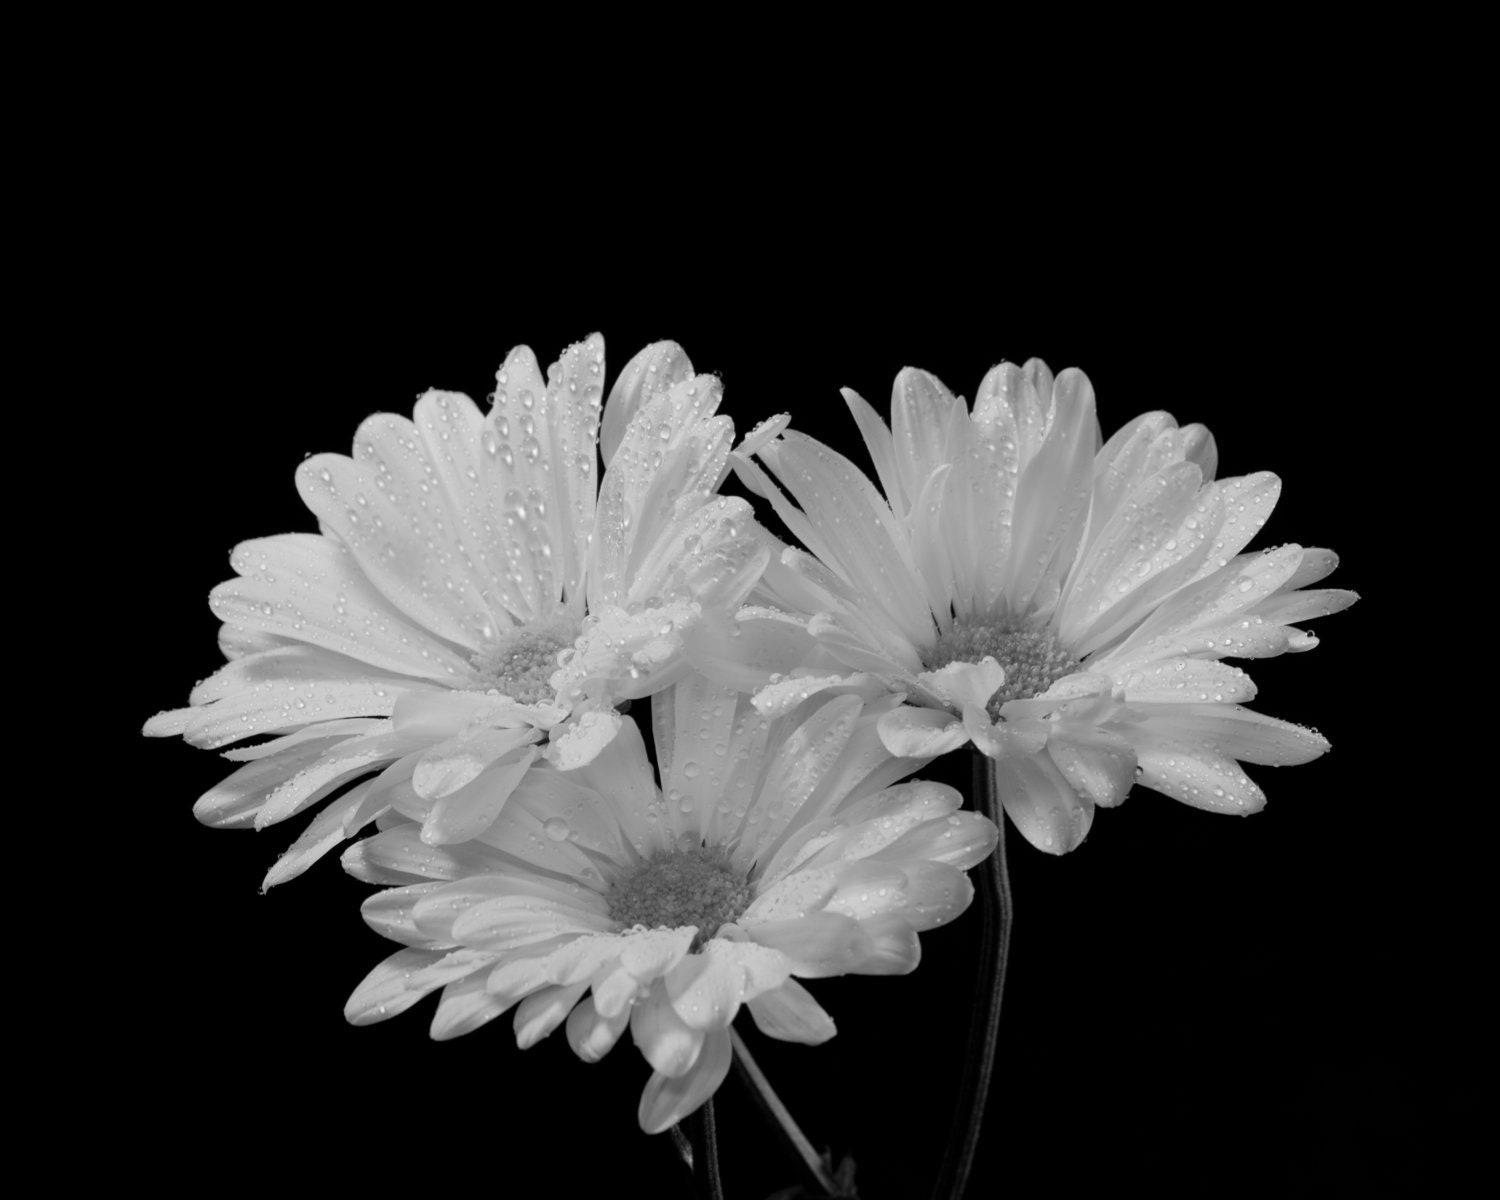 Daisies On Black Fine Art Black and White Photograph Flower